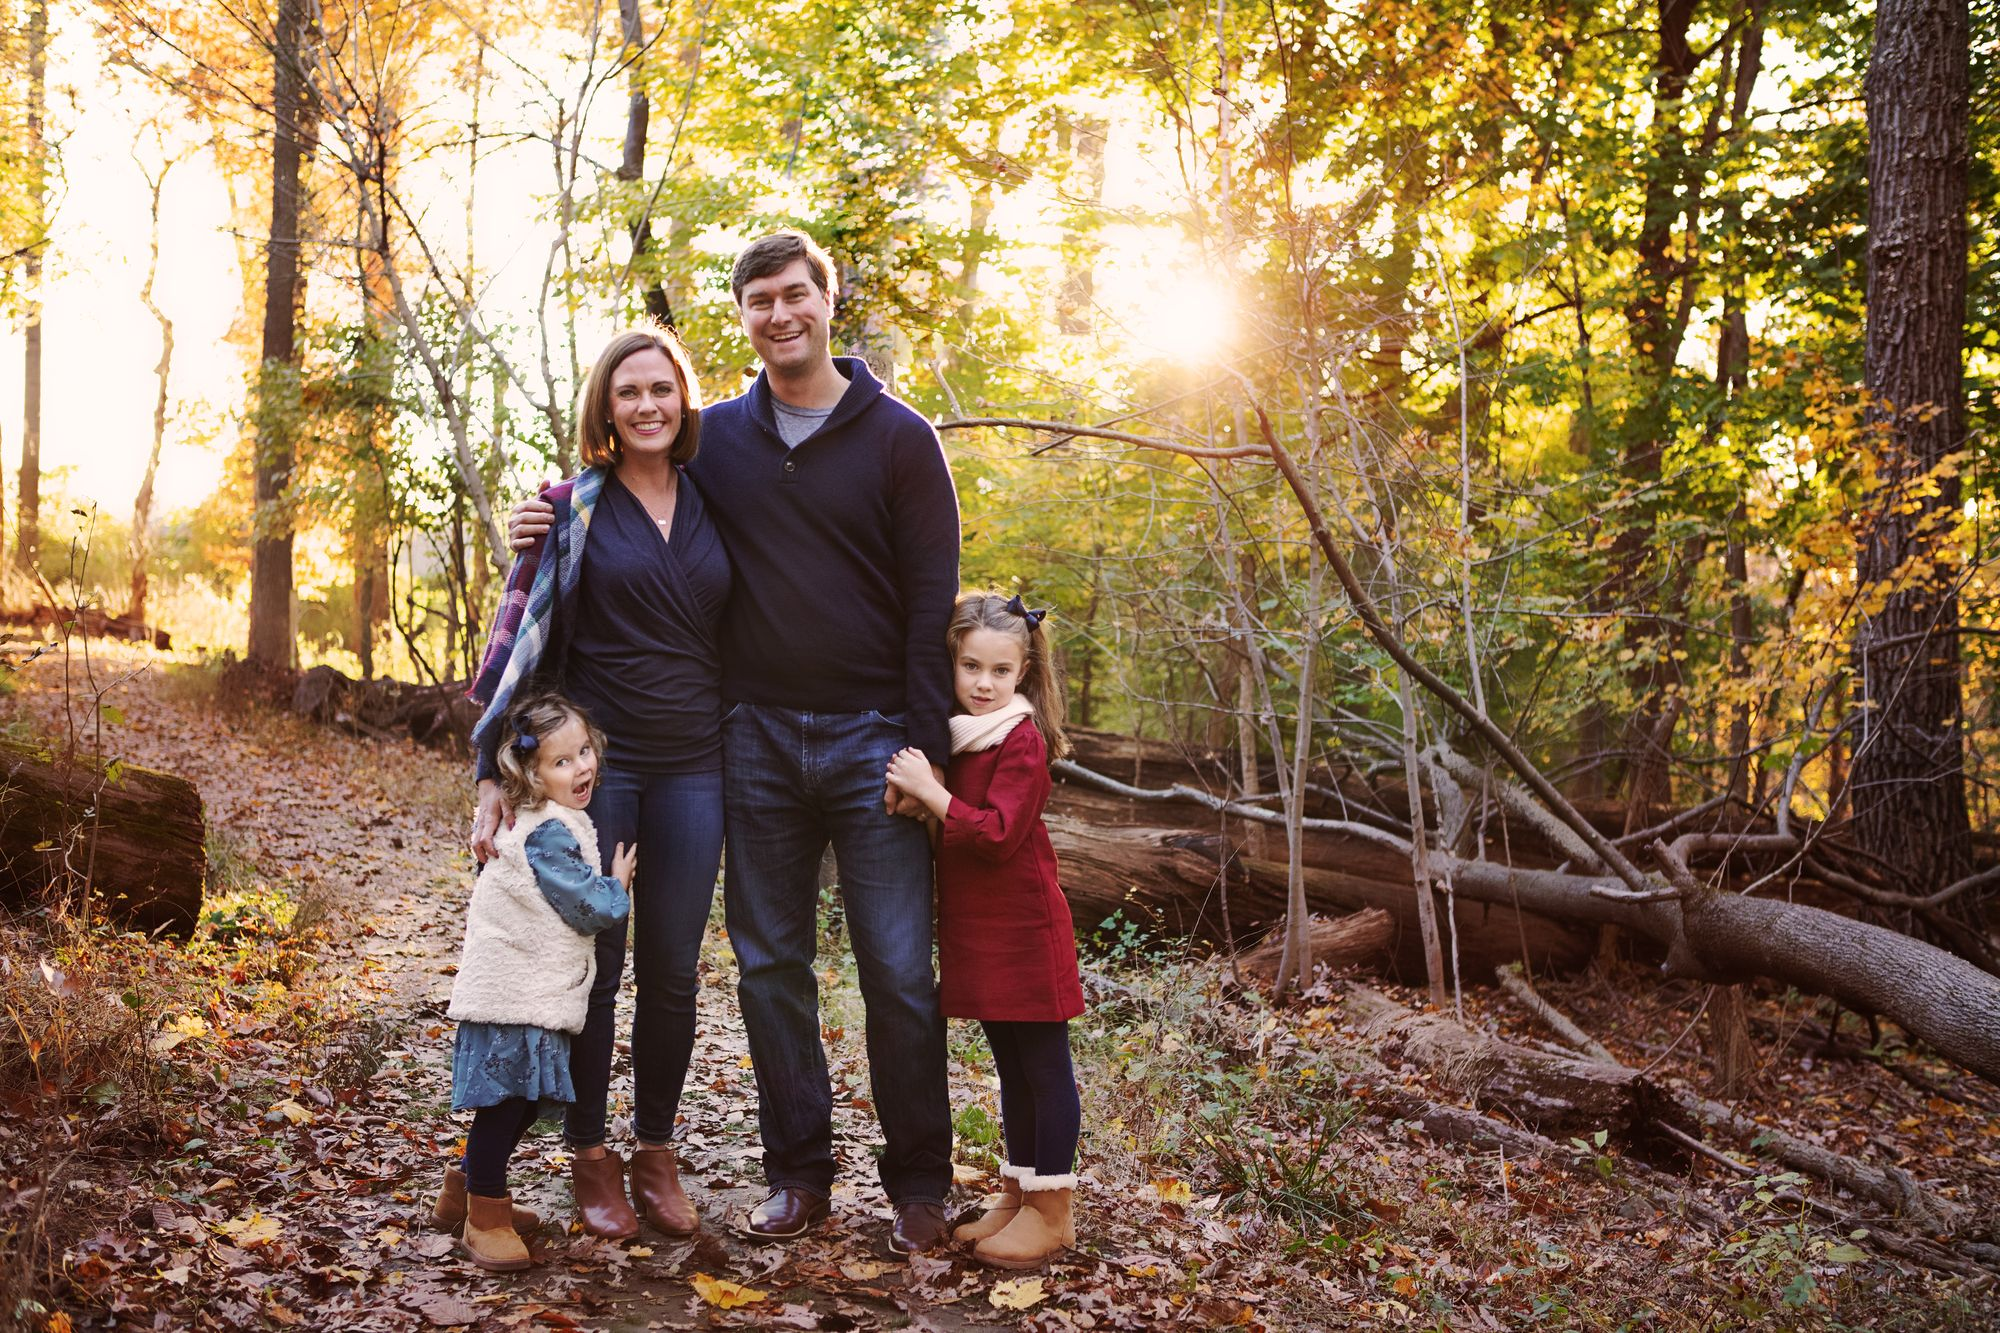 An autumn portrait photography session of a family